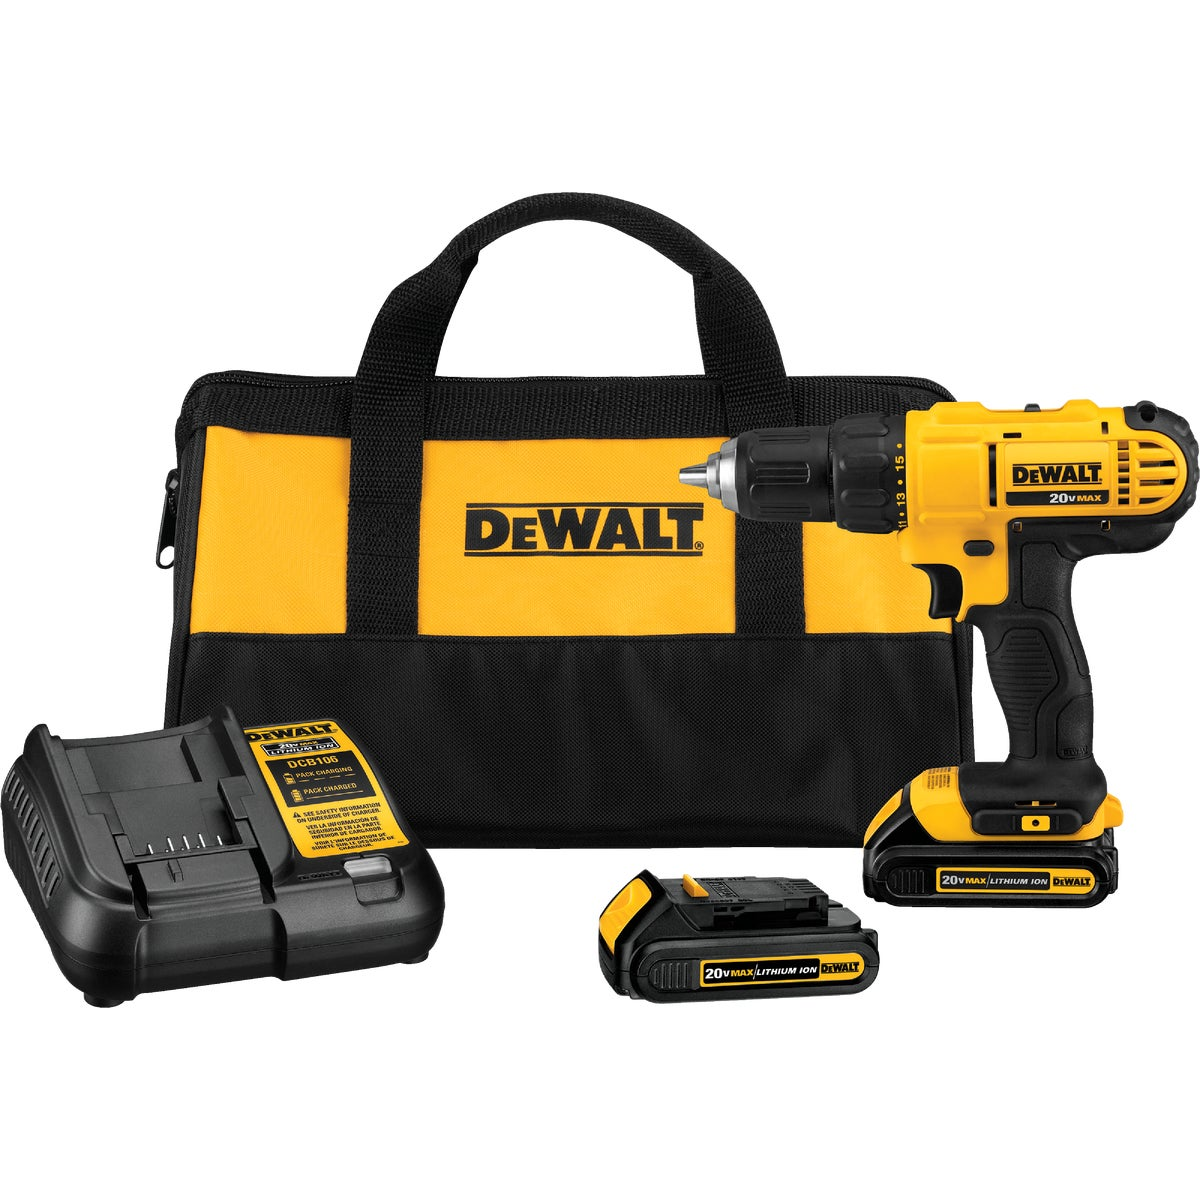 20X MAX DRILL/DRIVER KIT - DCD771C2 by DeWalt